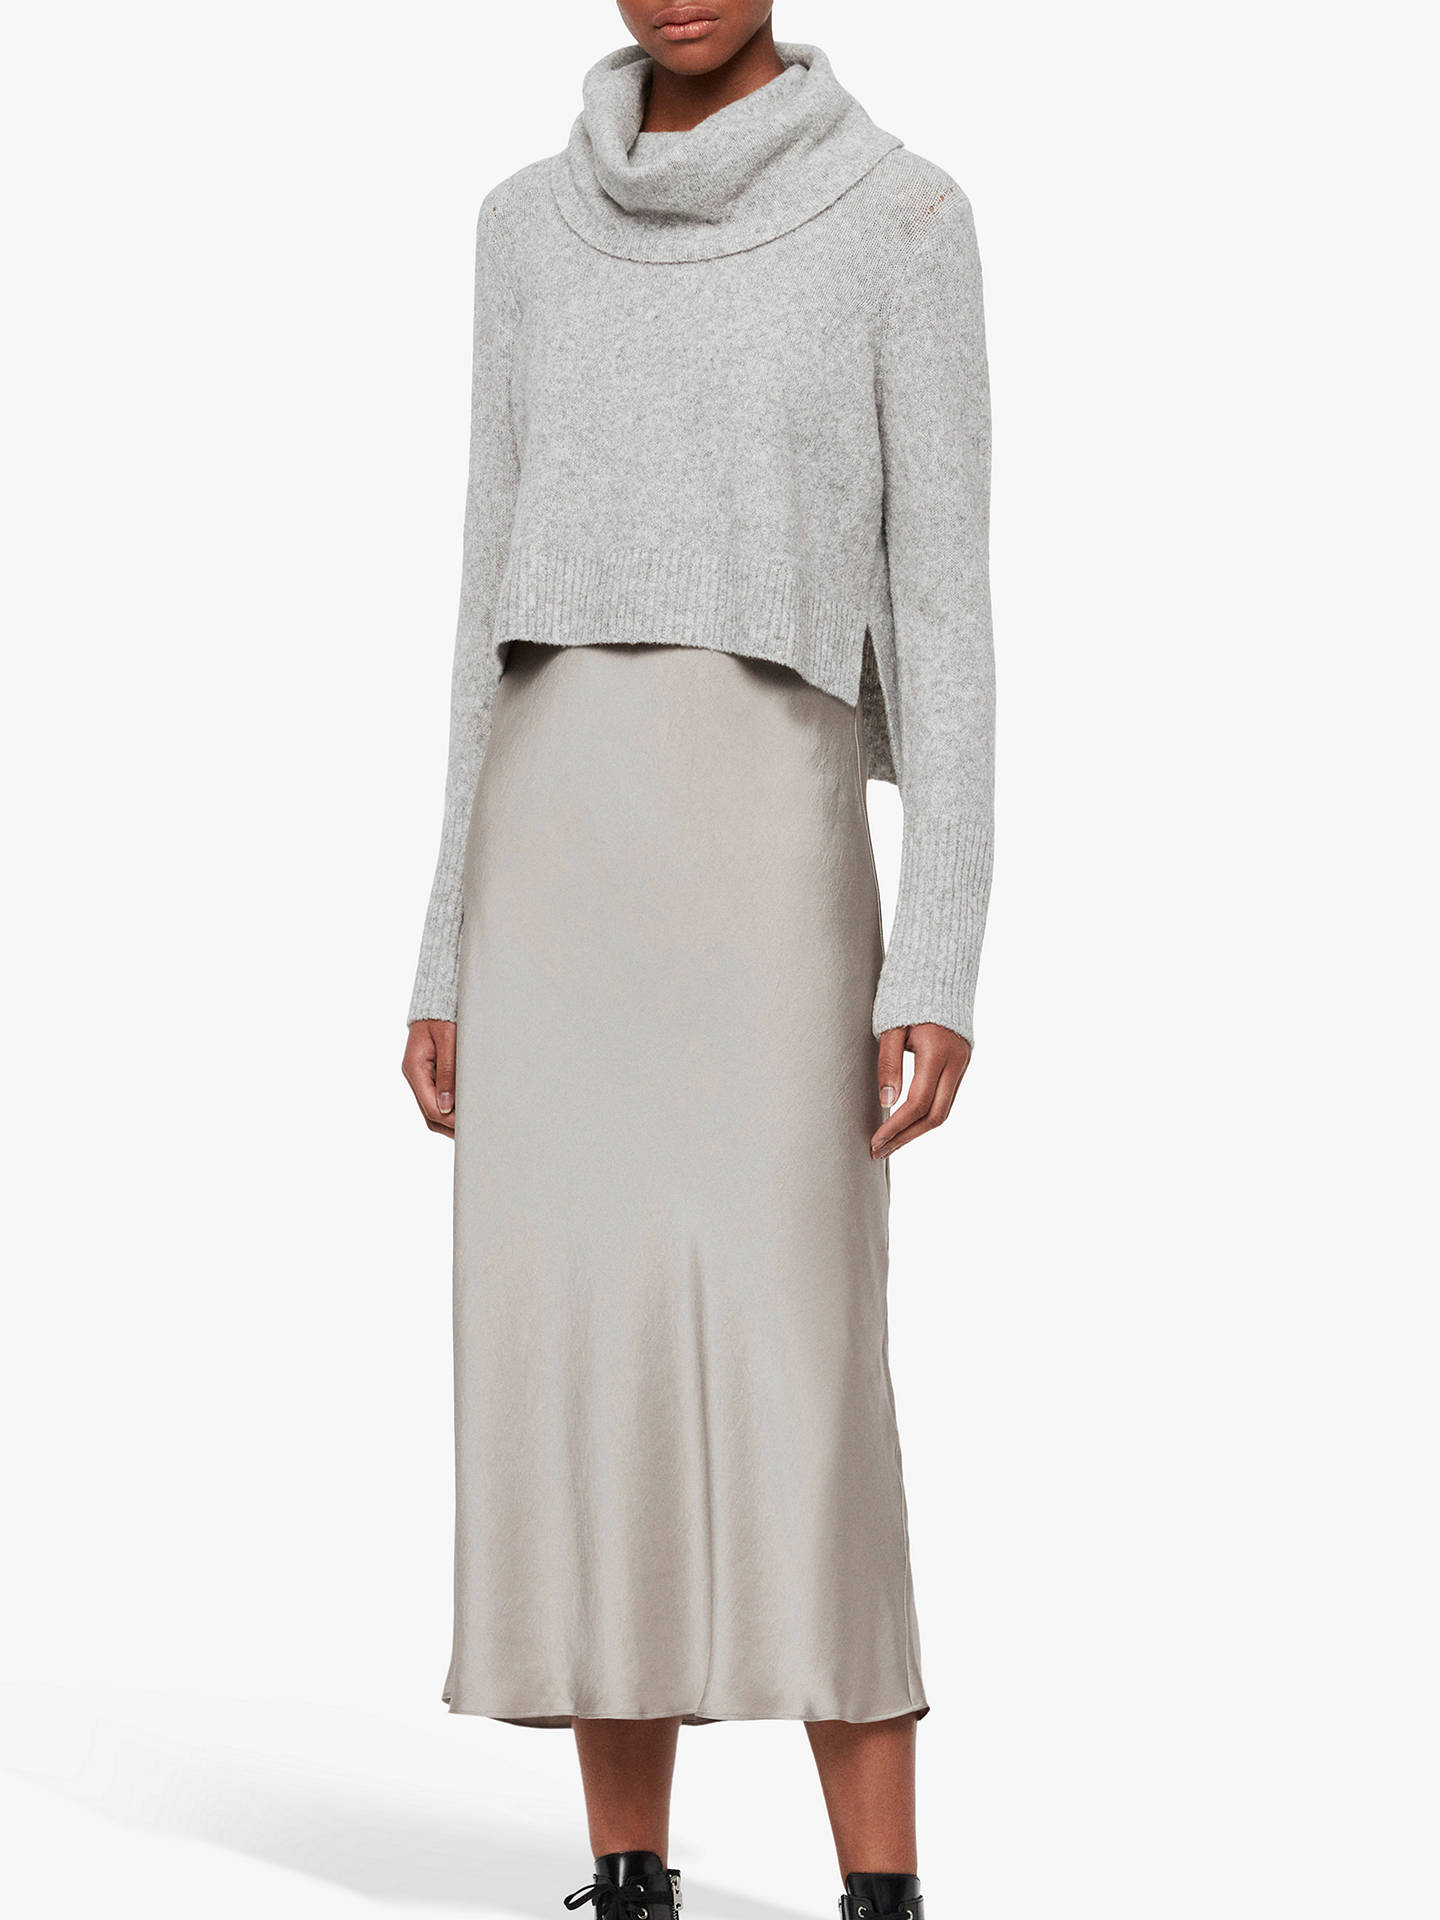 All Saints Tierny Roll Neck Jumper Dress, Grey Marl/Pearl by Allsaints